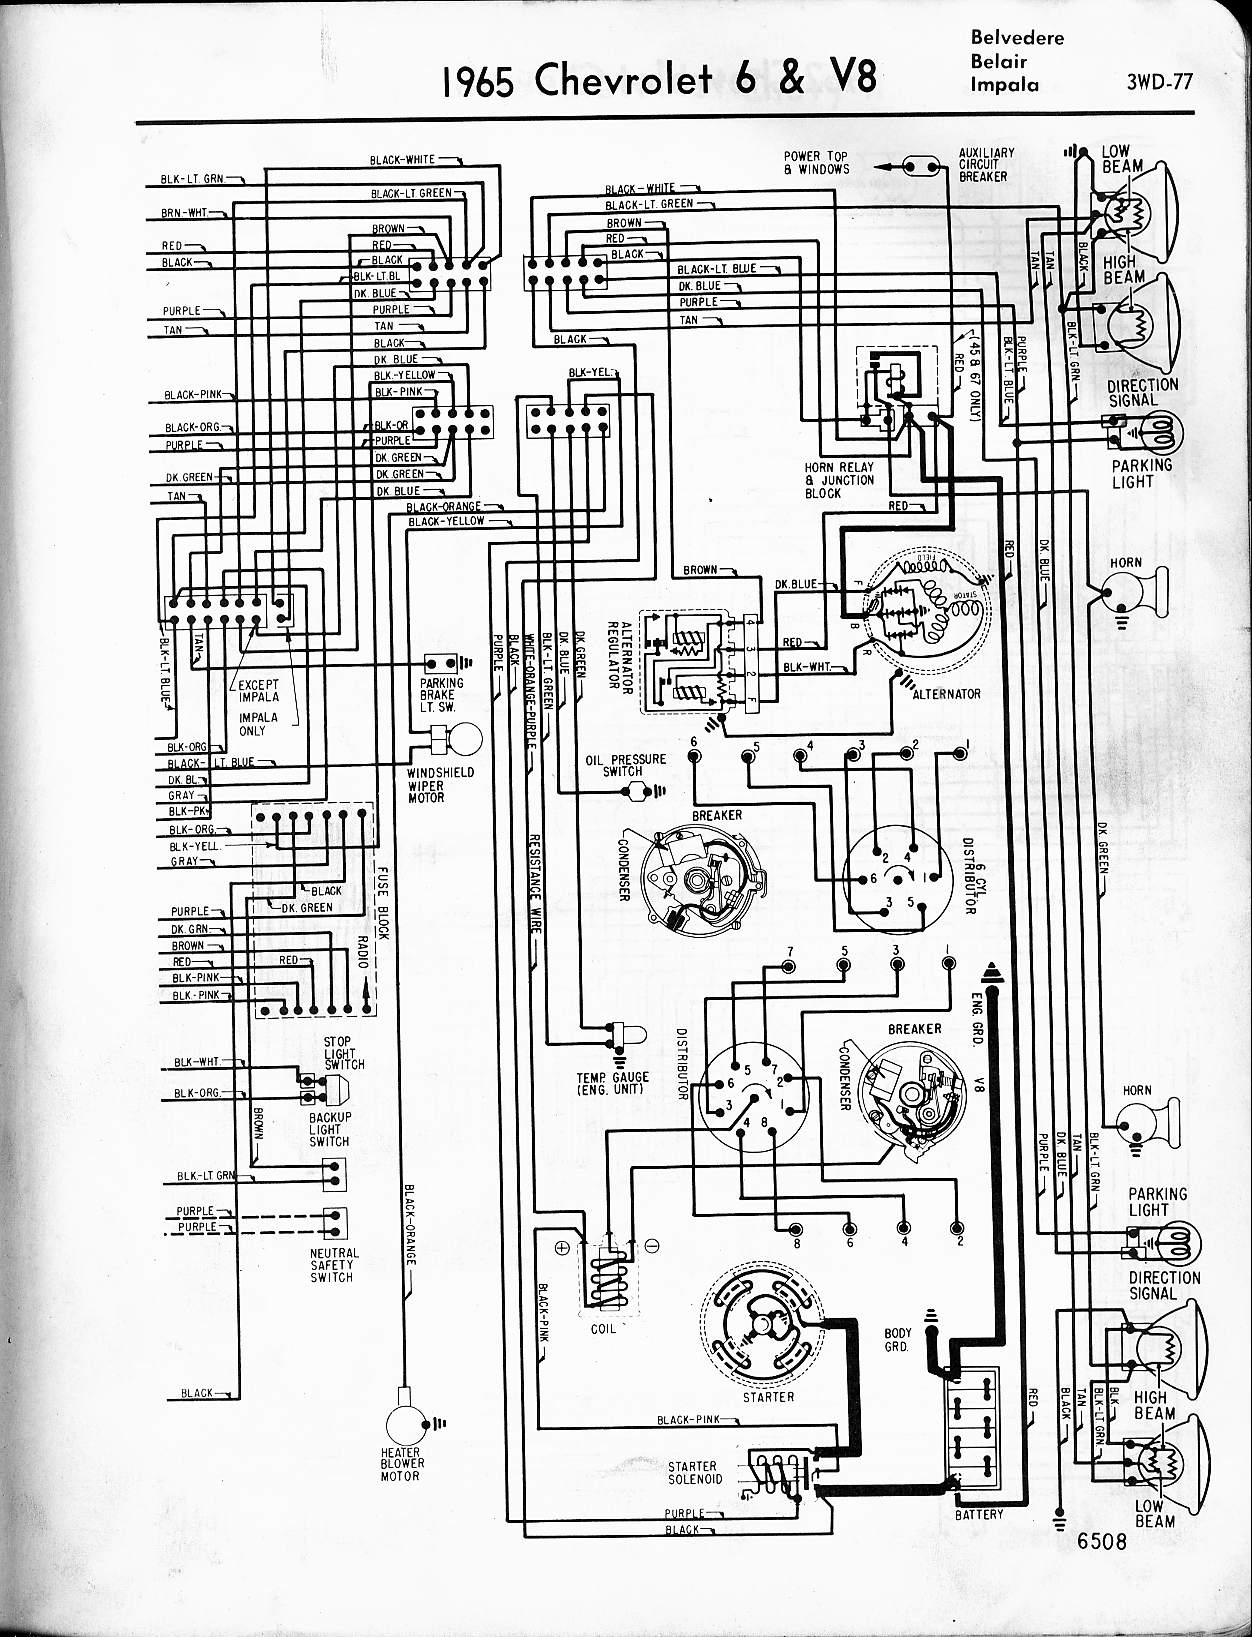 MWireChev65_3WD 077 chevy diagrams Basic Turn Signal Wiring Diagram at edmiracle.co